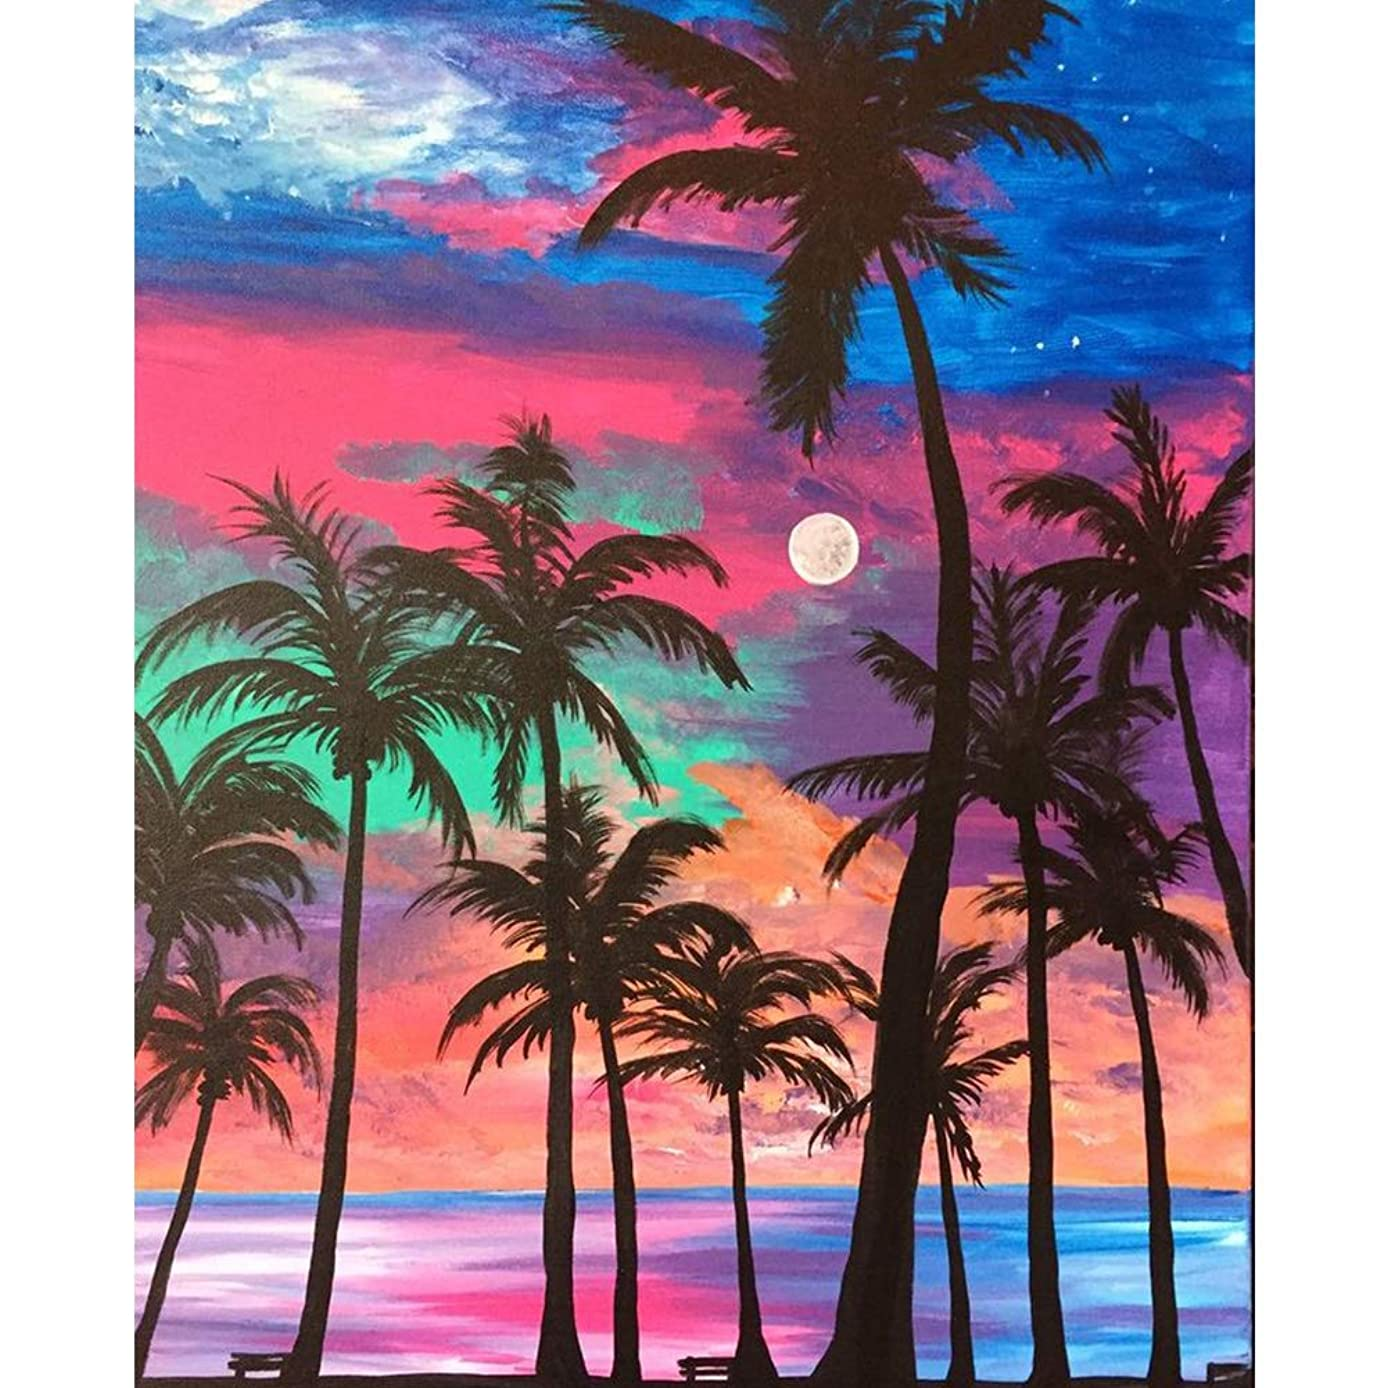 DIY 5D Diamond Painting by Number Kit,Crystal Rhinestone Diamond Embroidery Paintings Cross Stitch for Home Wall Decor Colored Sky Coconut Tree,11.8 x 15.7inch